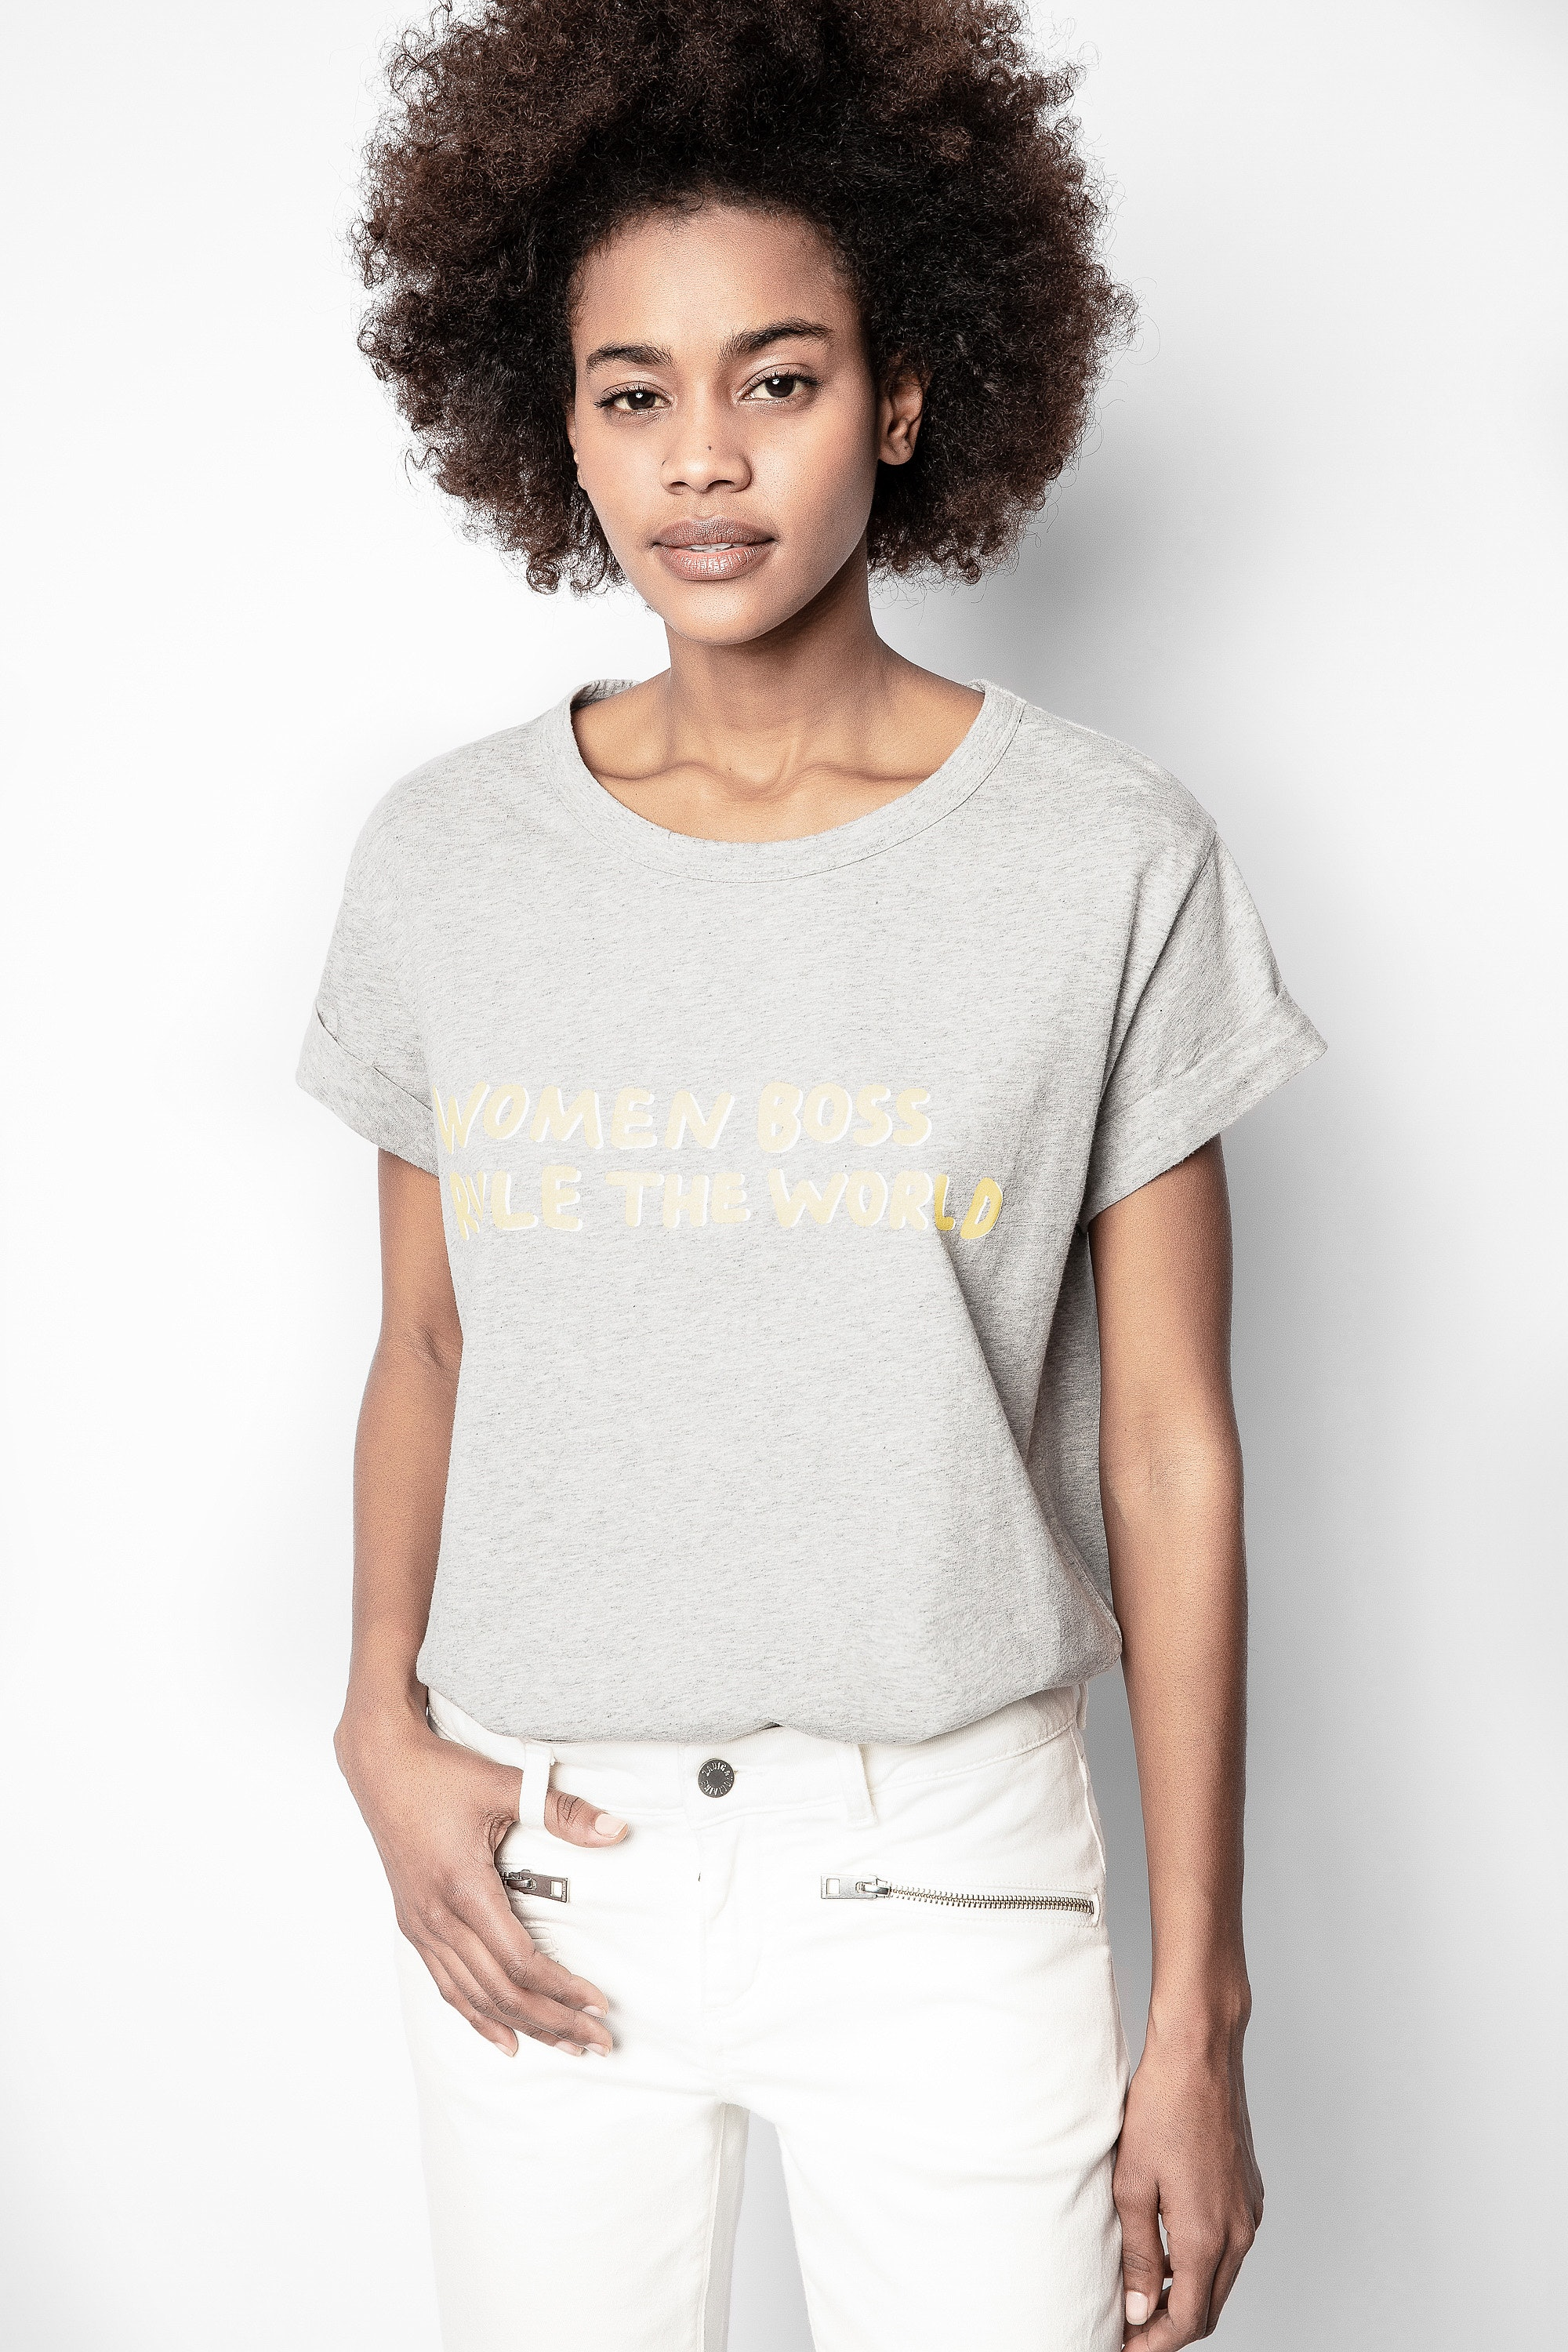 Anya Women Boss T-shirt